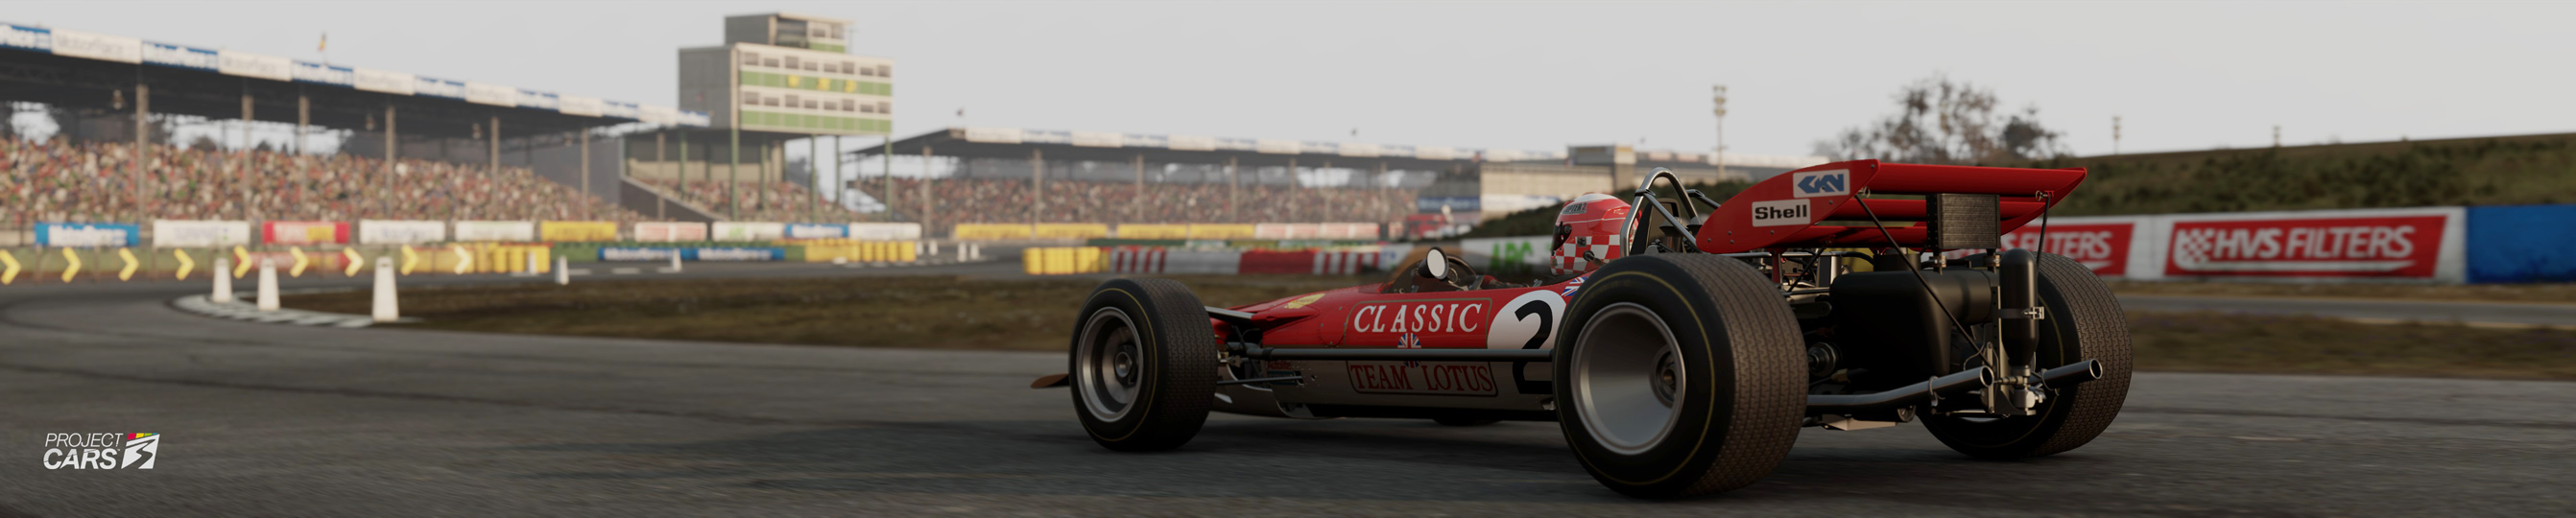 4 PROJECT CARS 3 LOTUS 49C at SILVERSTONE CLASSIC GP crop copy.jpg